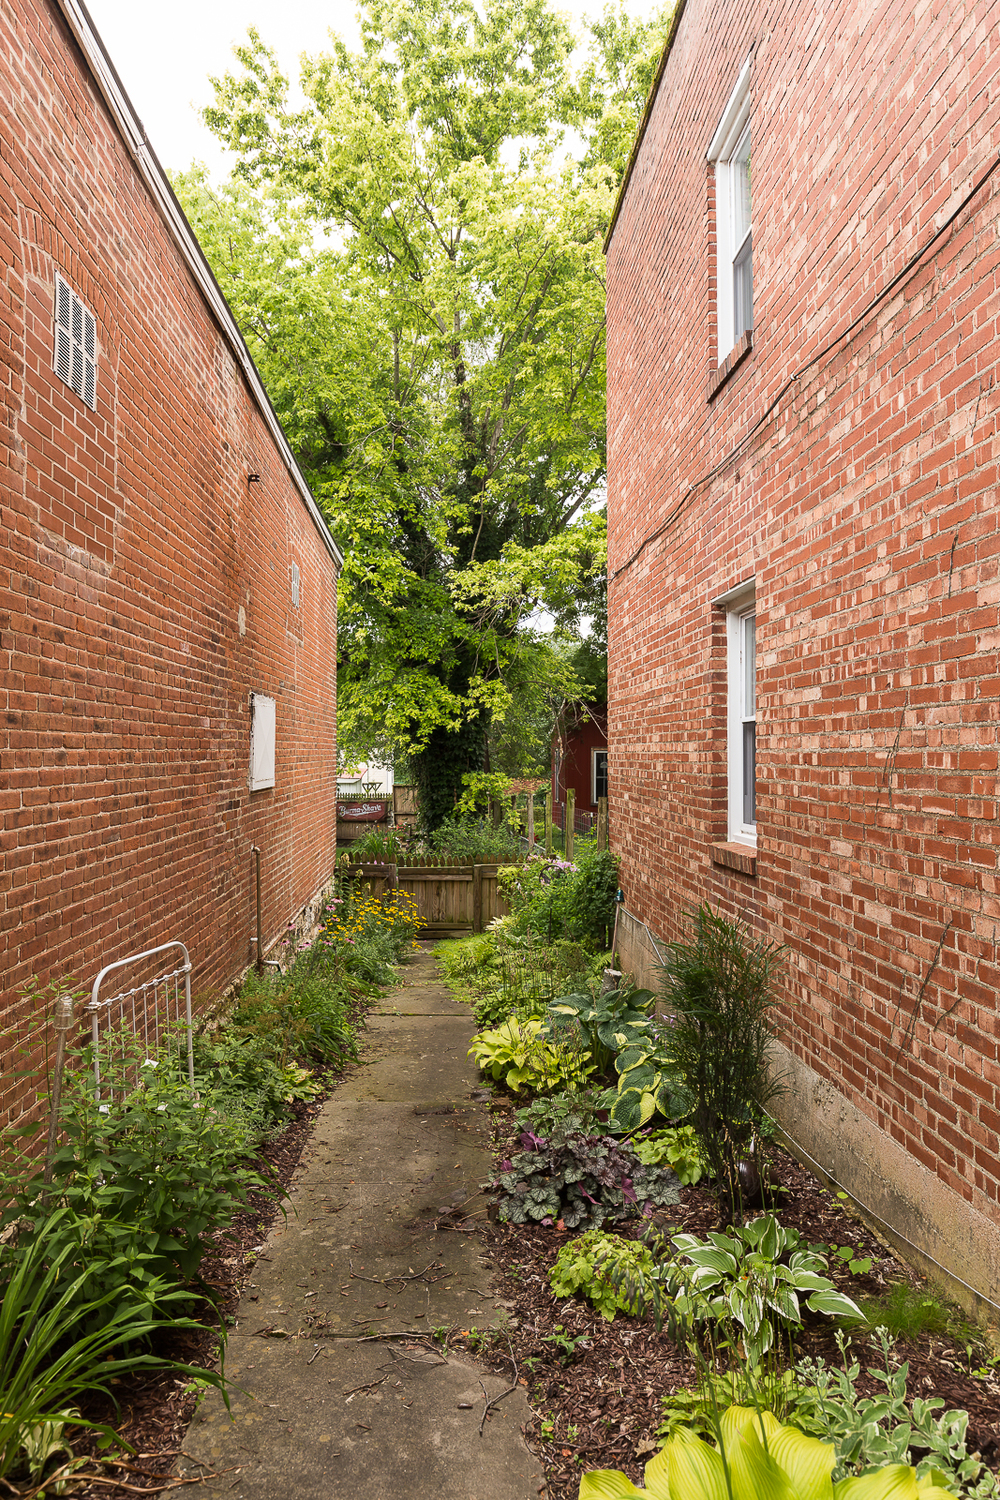 Another garden in an alley!